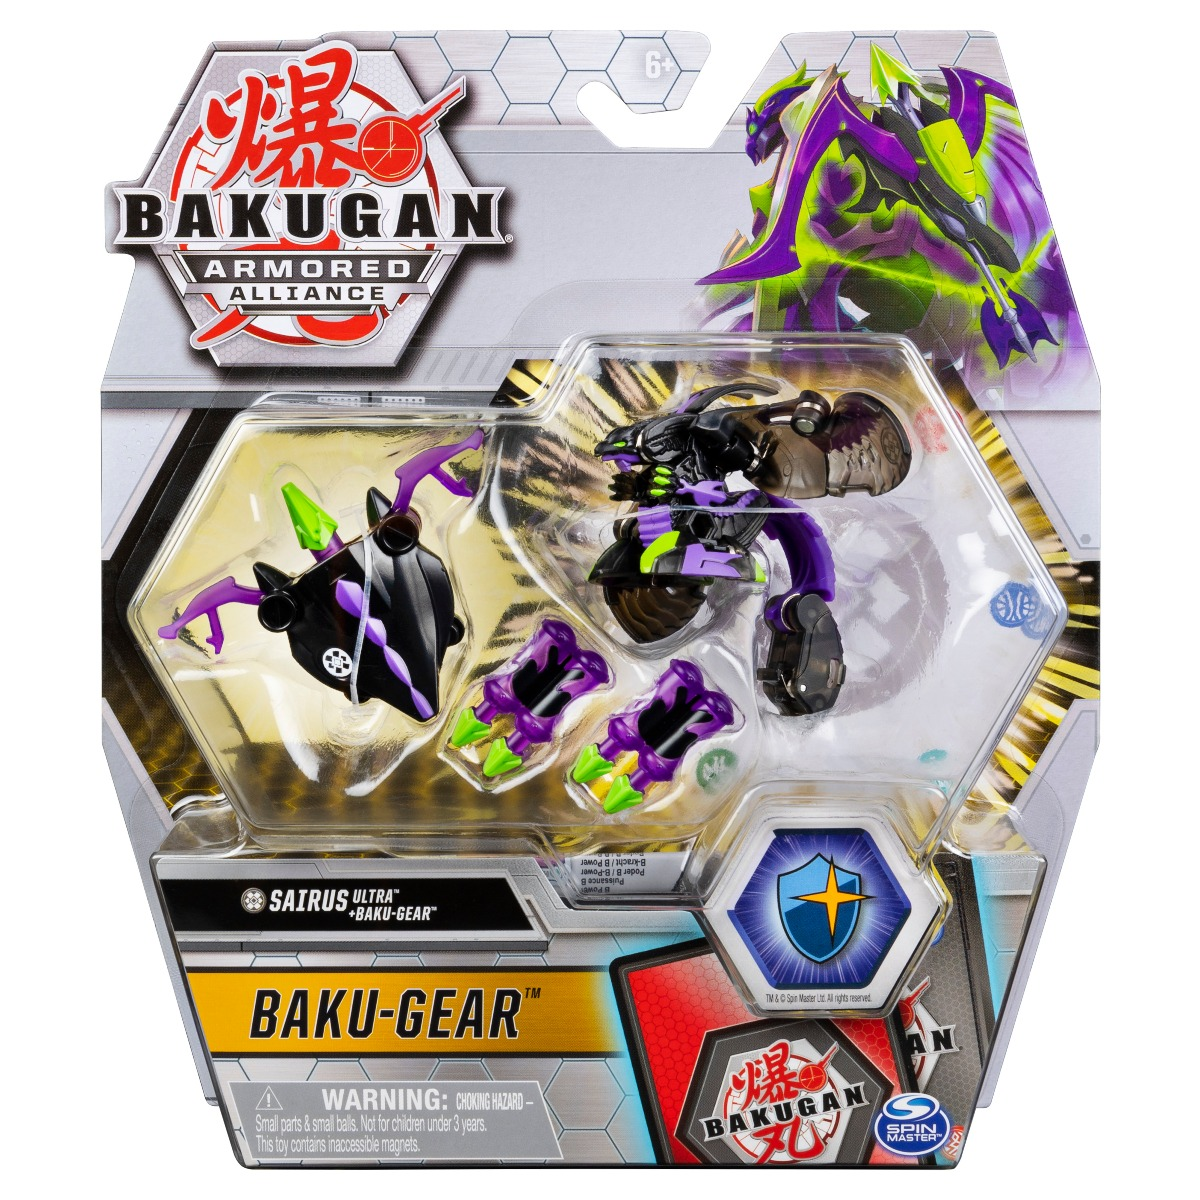 Figurina Bakugan Armored Alliance, Sairus Ultra, Baku-Gear 20124272